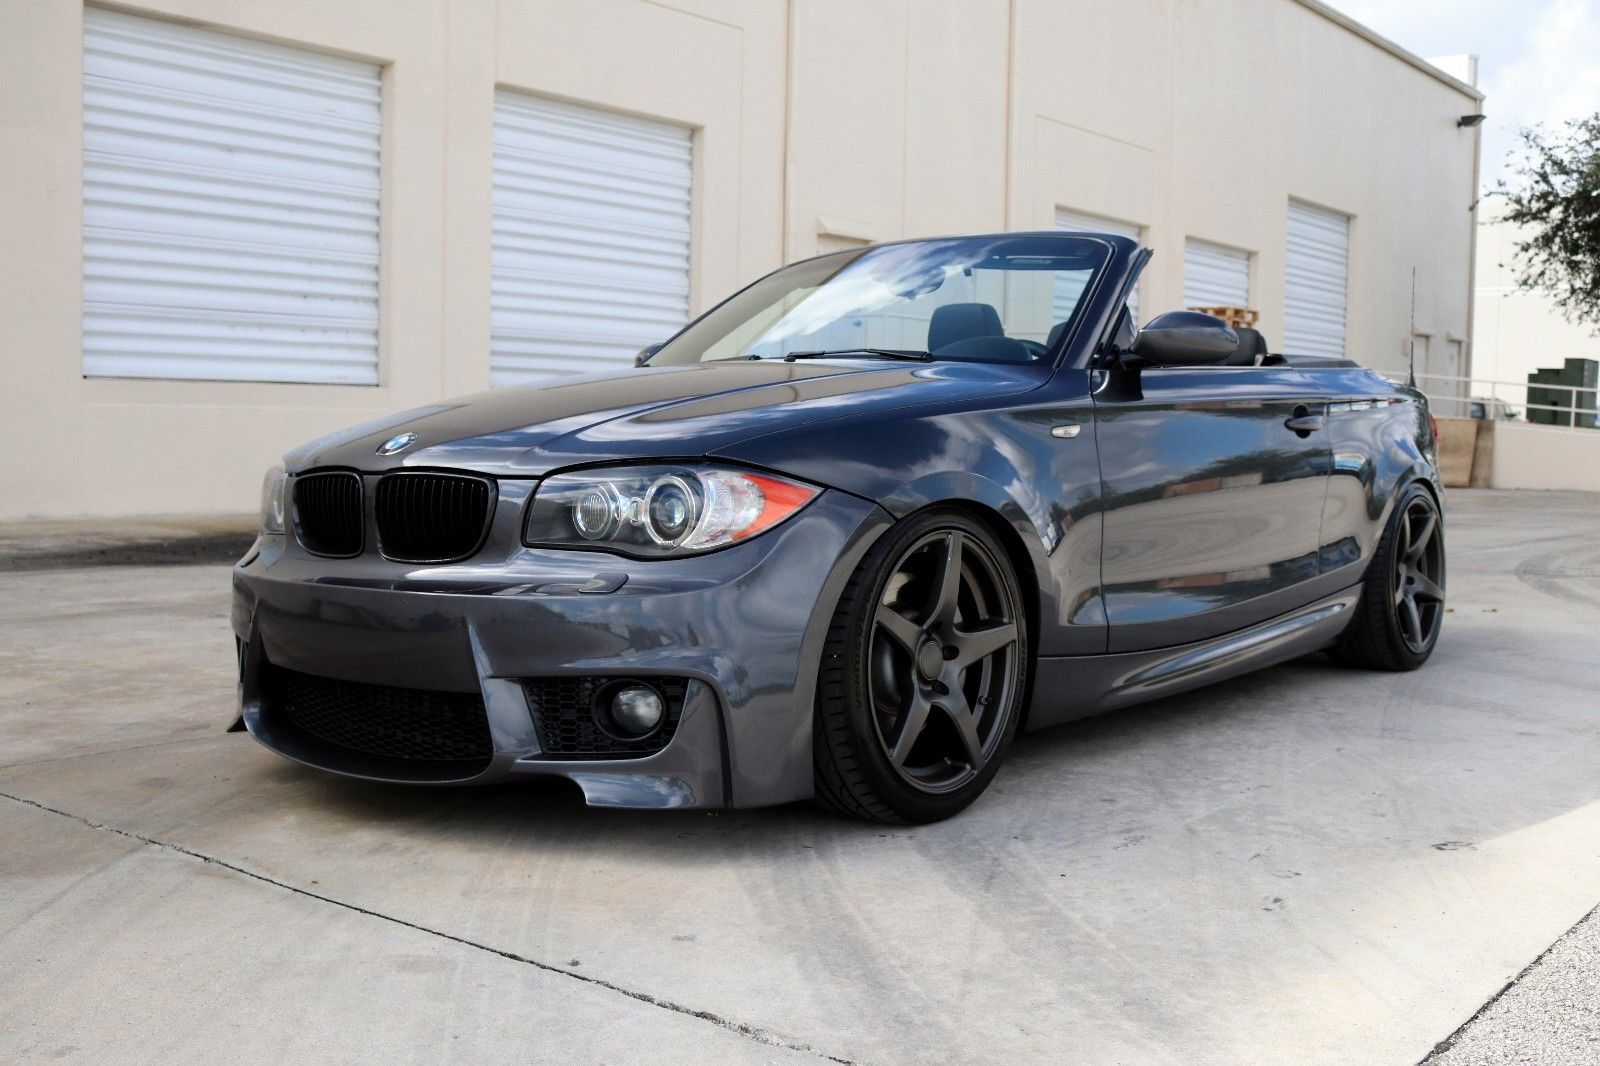 2008 Bmw 1 Series Convertible 135i 1 Owner 2008 Bmw 1 Series